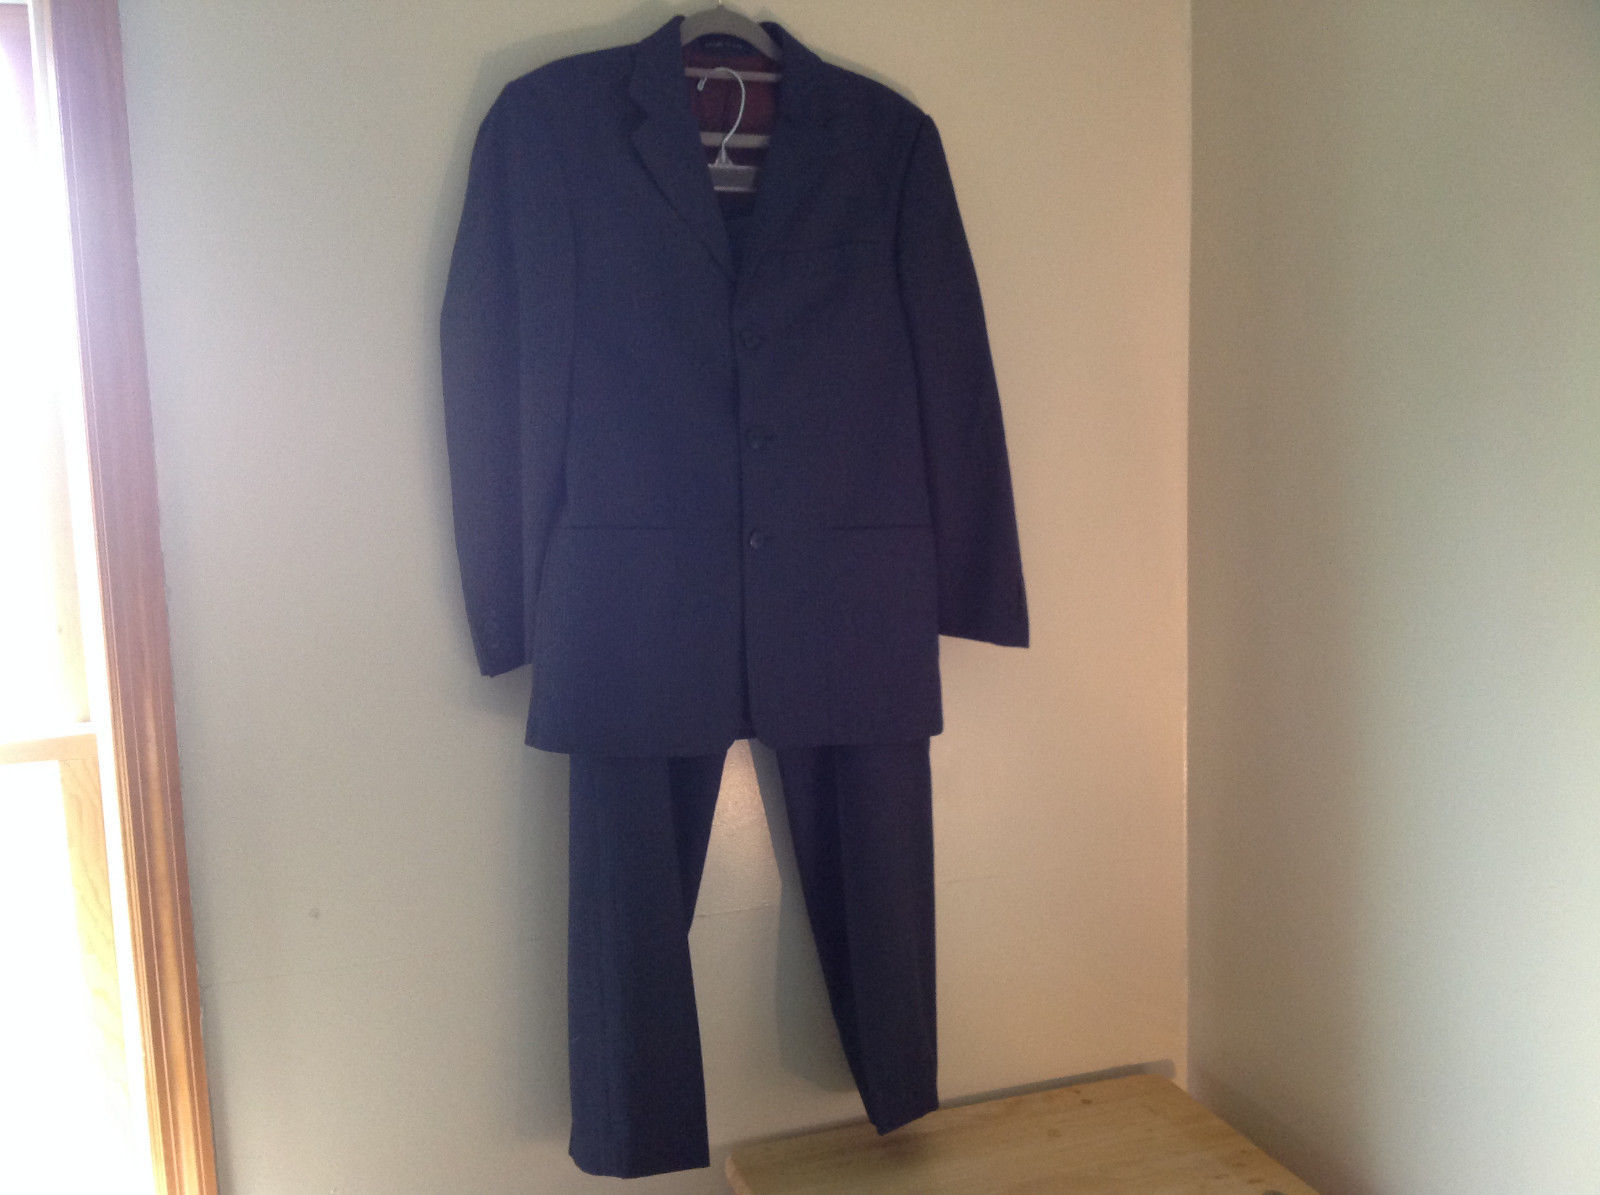 Blue Pin Striped Matching Jacket and Pants by Mossimo See Measurements Below